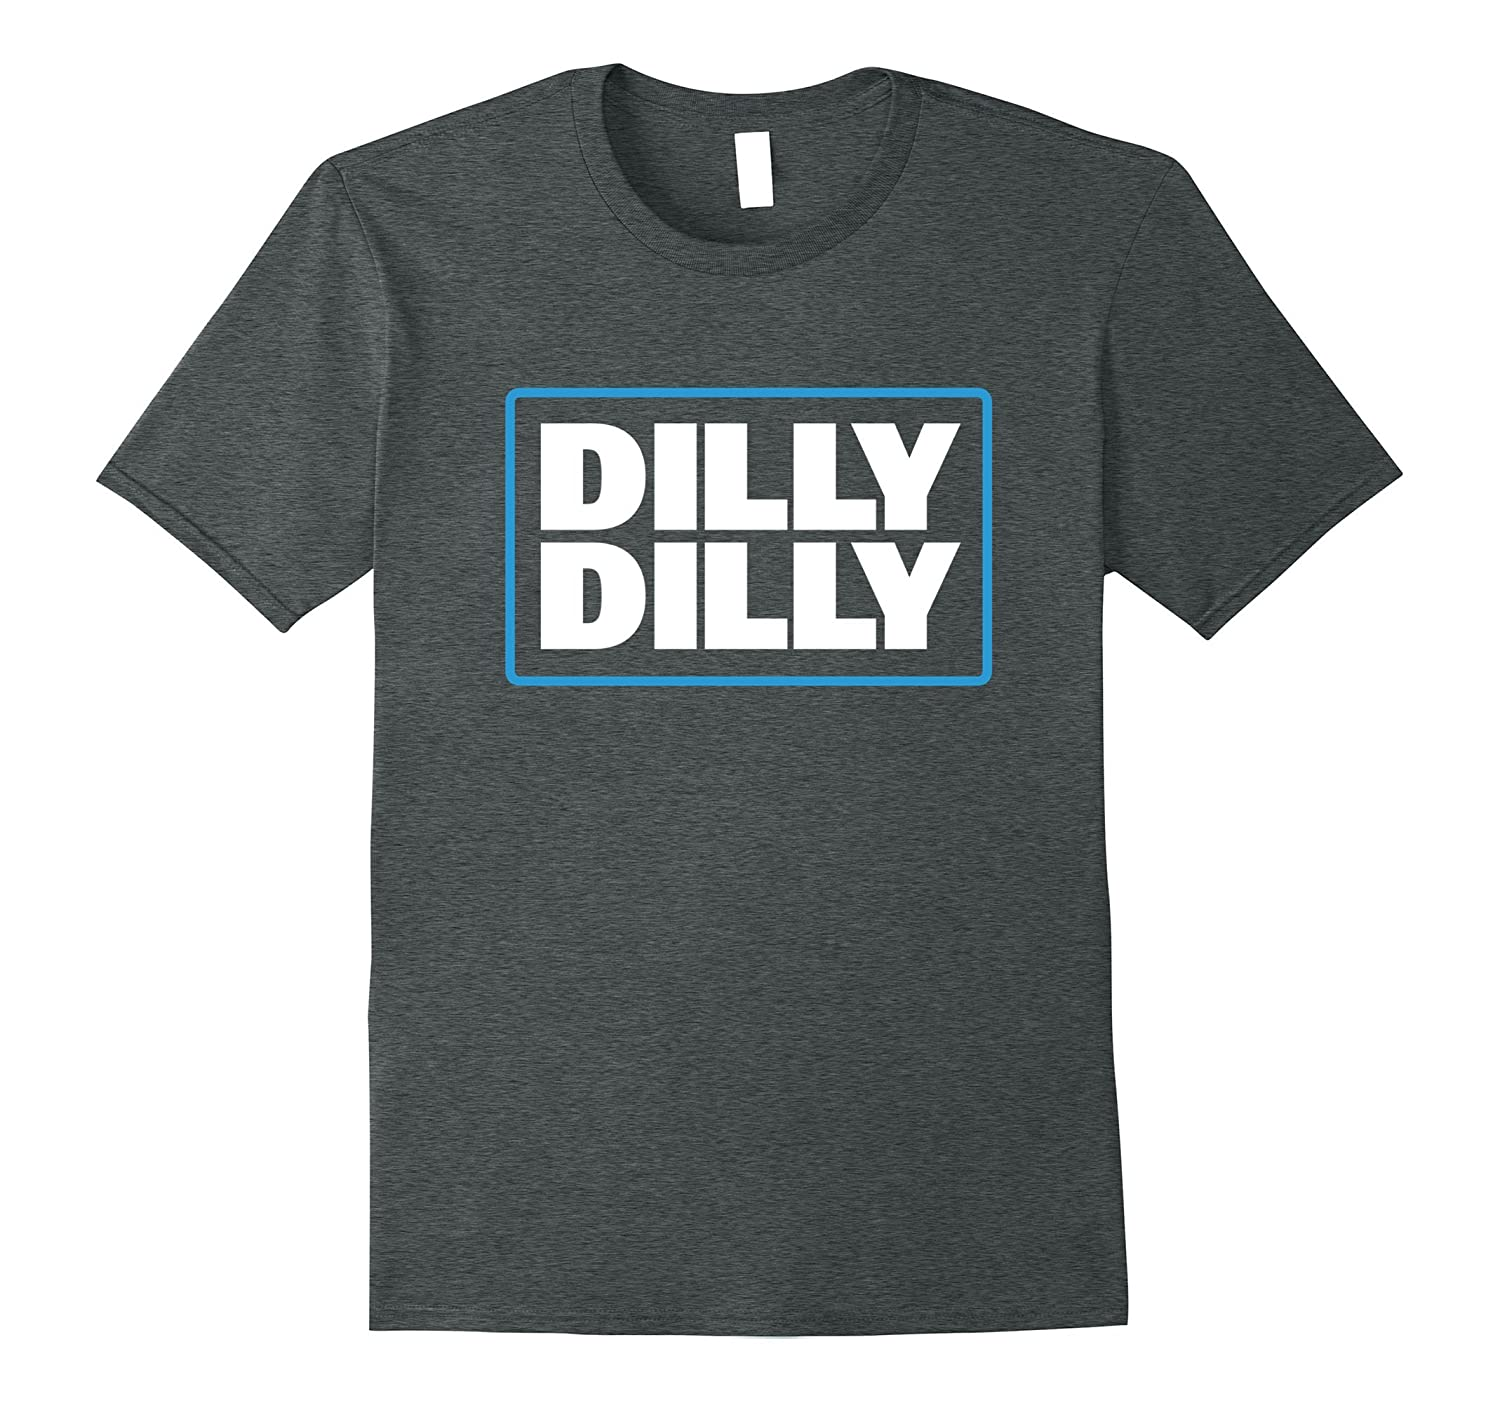 Bud Light Official Dilly Dilly T-Shirt-ah my shirt one gift